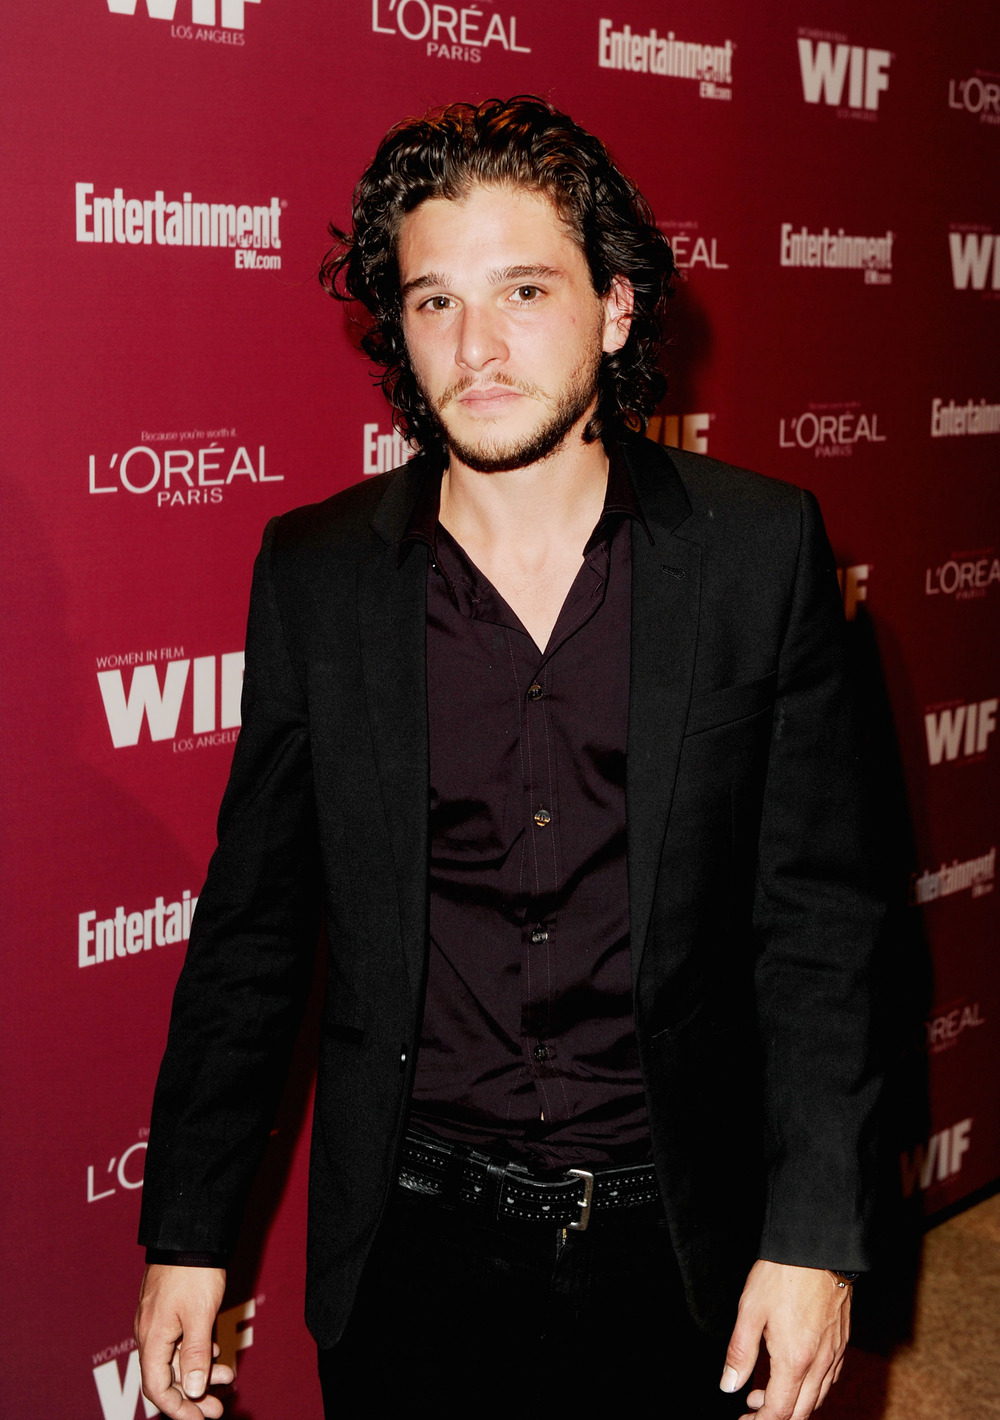 Game of Thrones' Kit Harington Snags Another Big Role